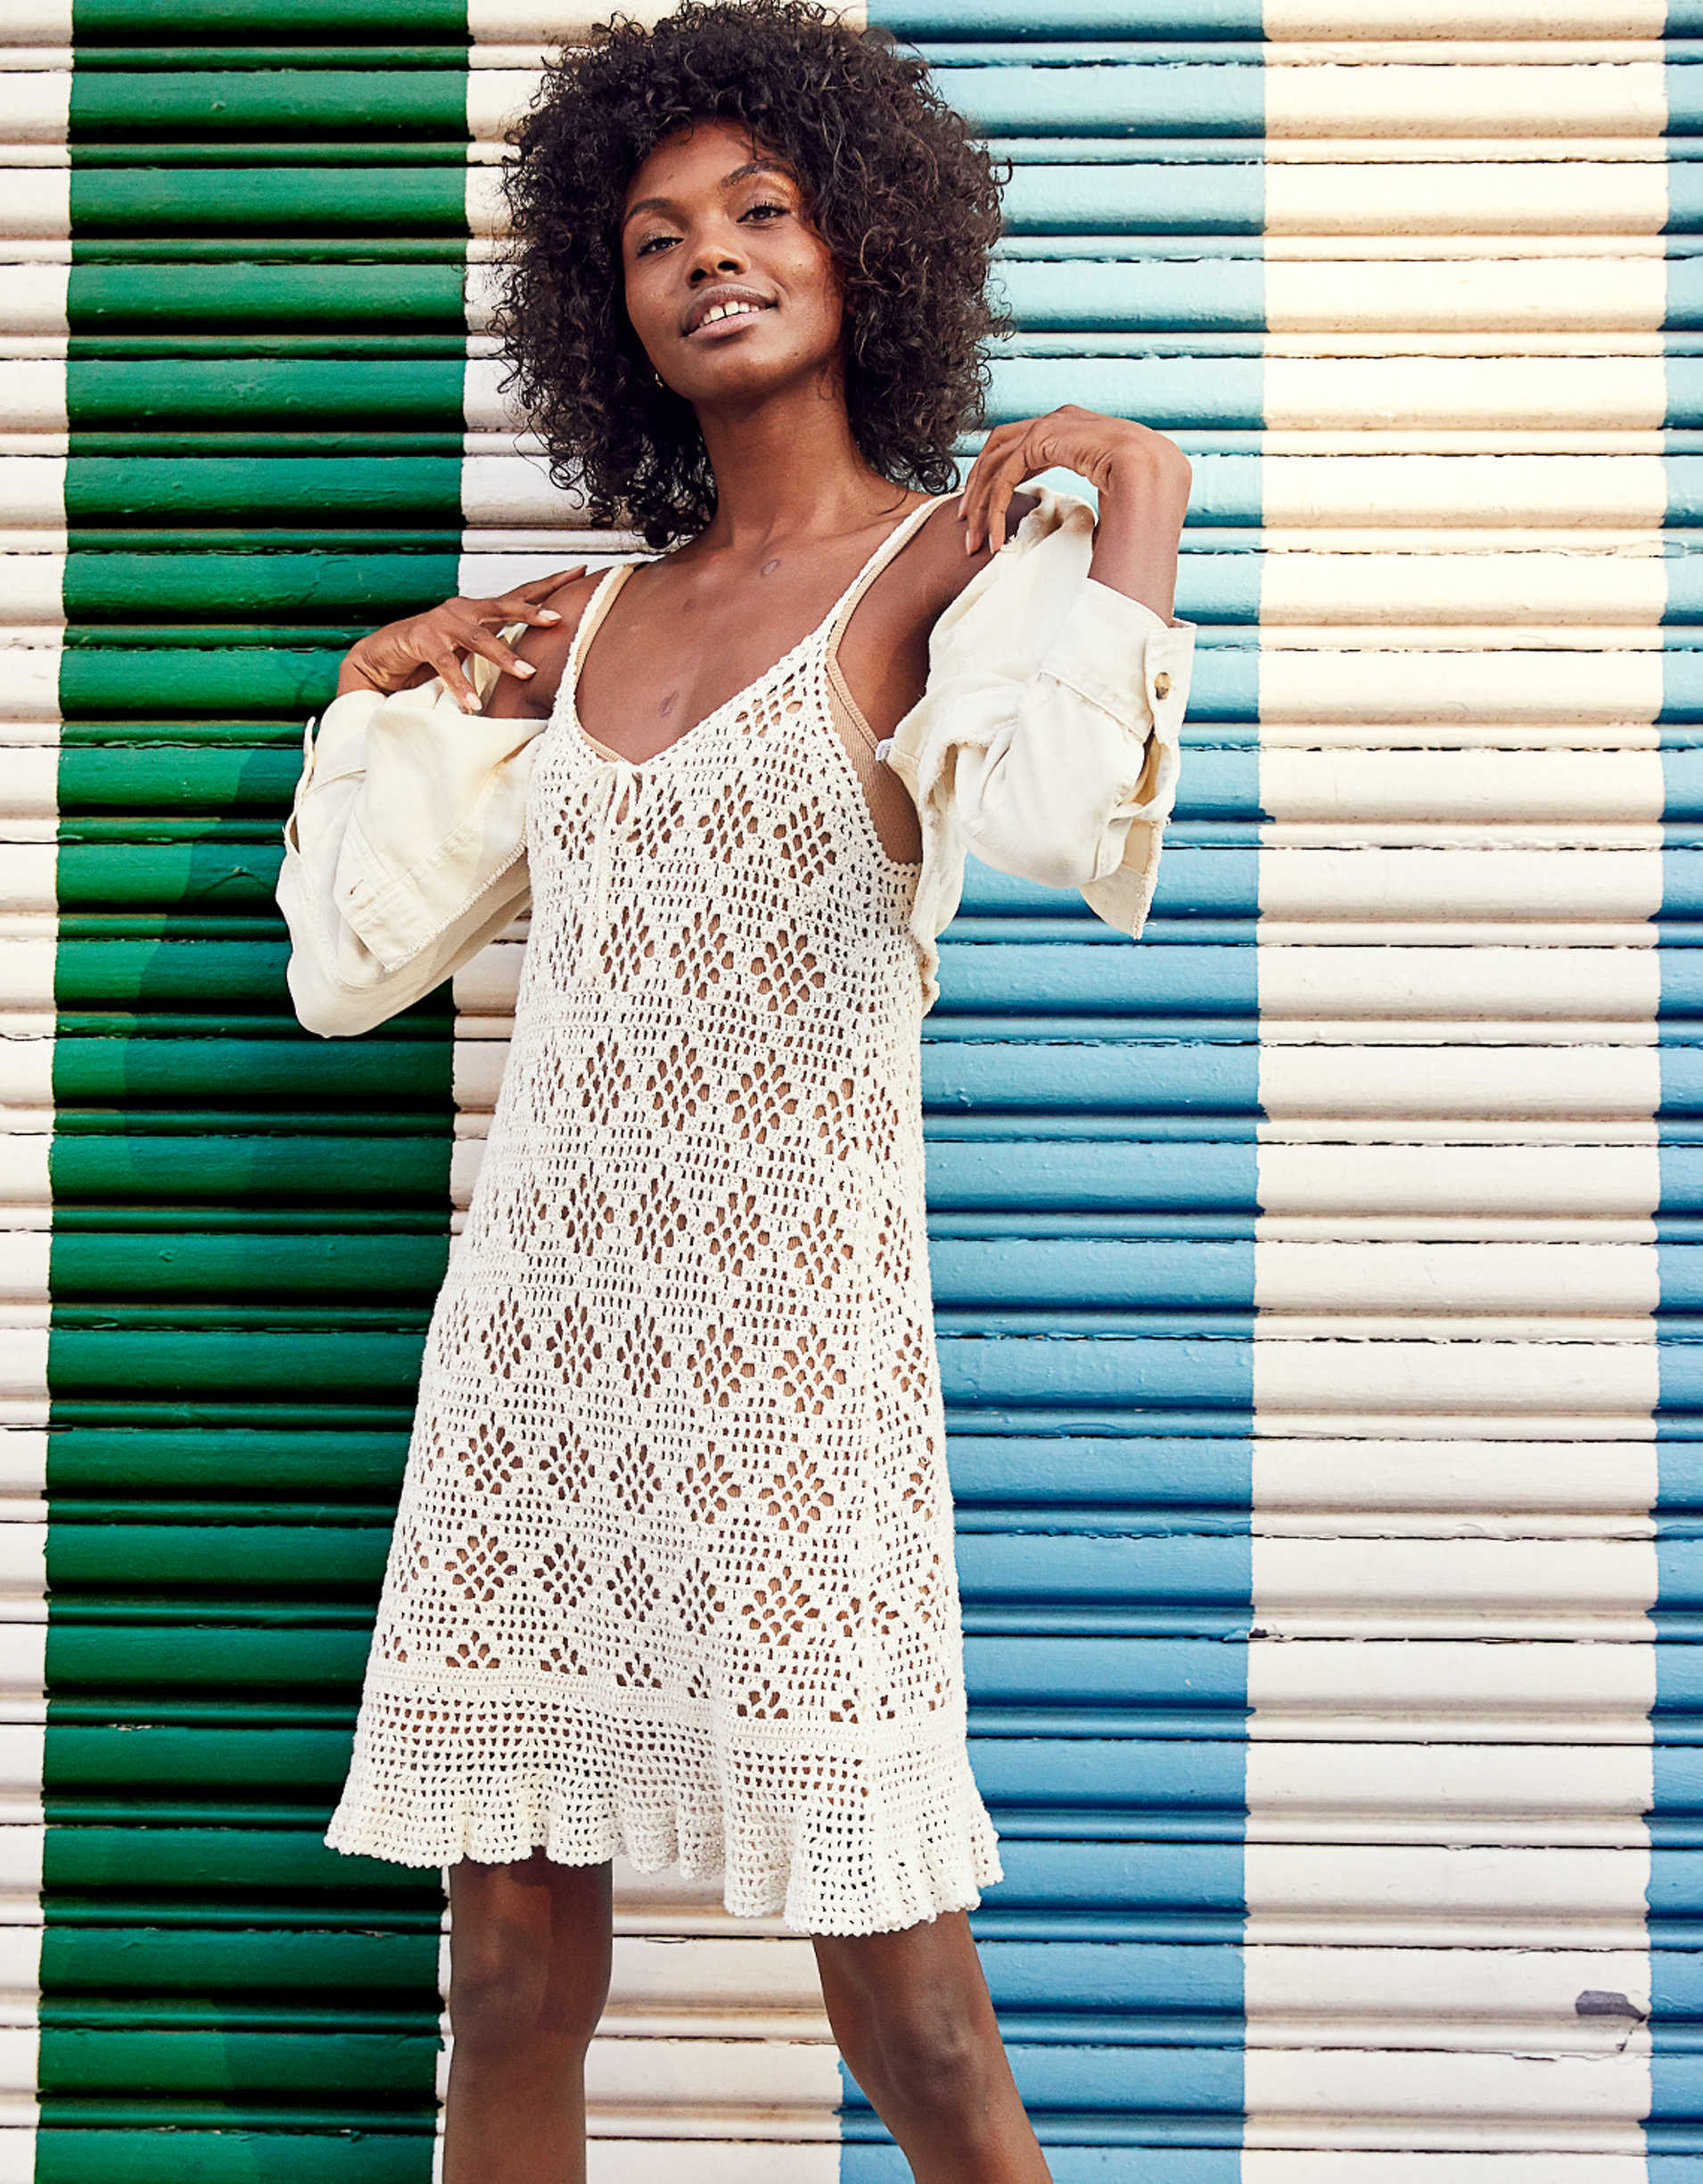 A model wears the Aerie crochet tank dress with a nude bralette and the Aerie empire cream cropped jacket